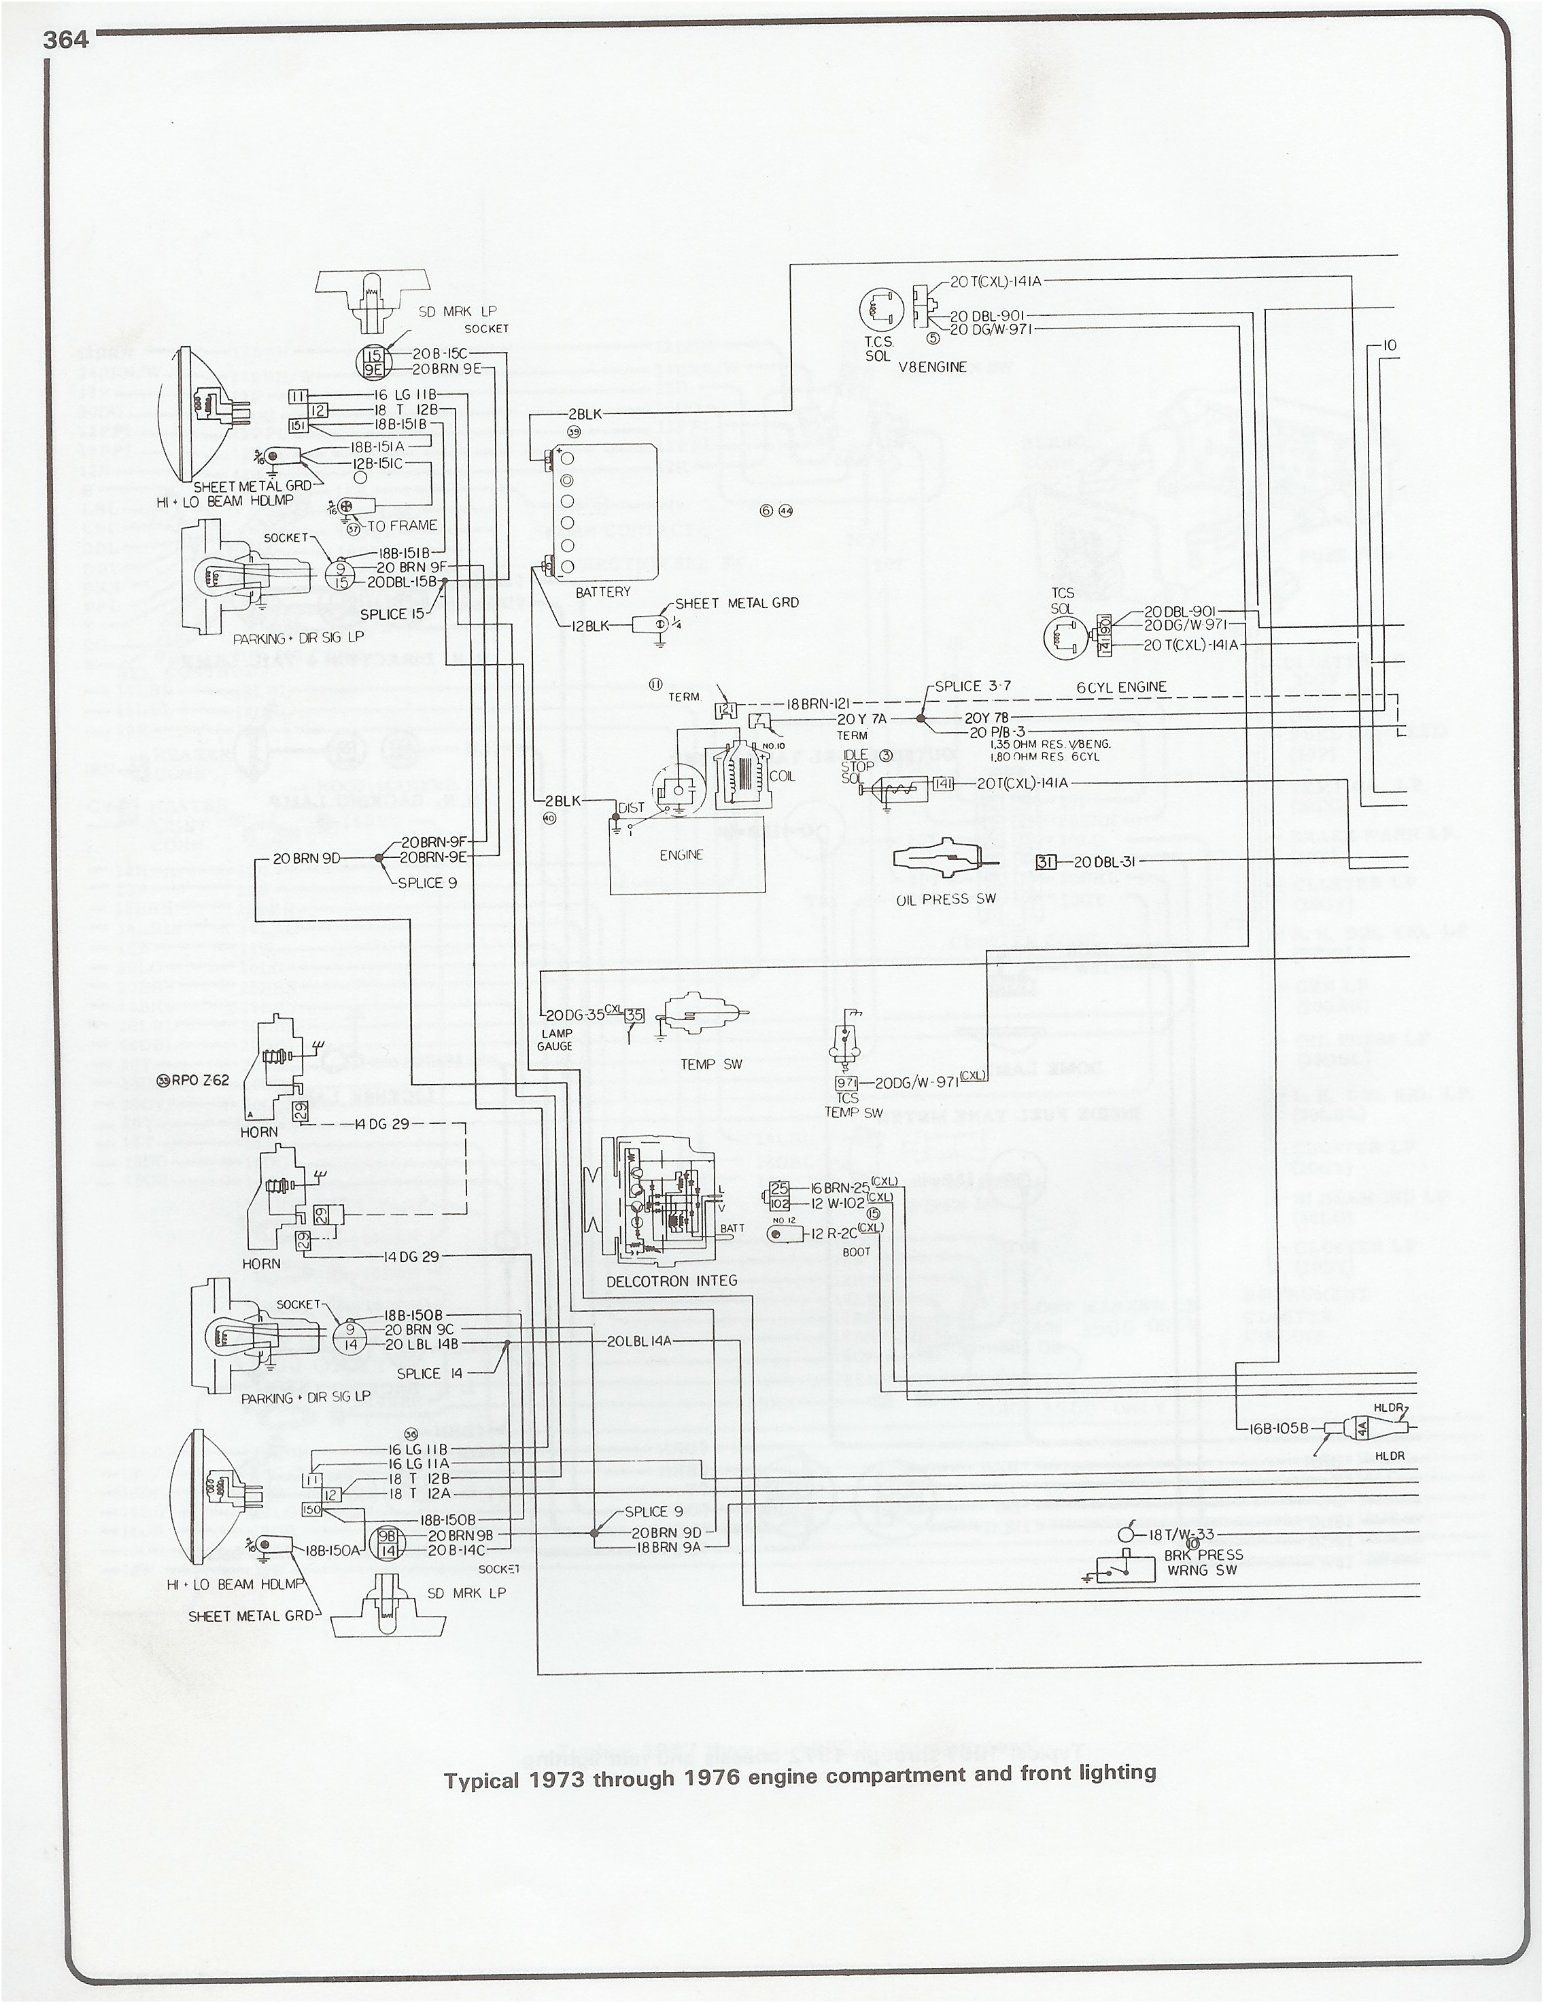 73 chevy c10 fuse box wiring diagram mega 73 chevy c10 fuse box [ 1544 x 2003 Pixel ]